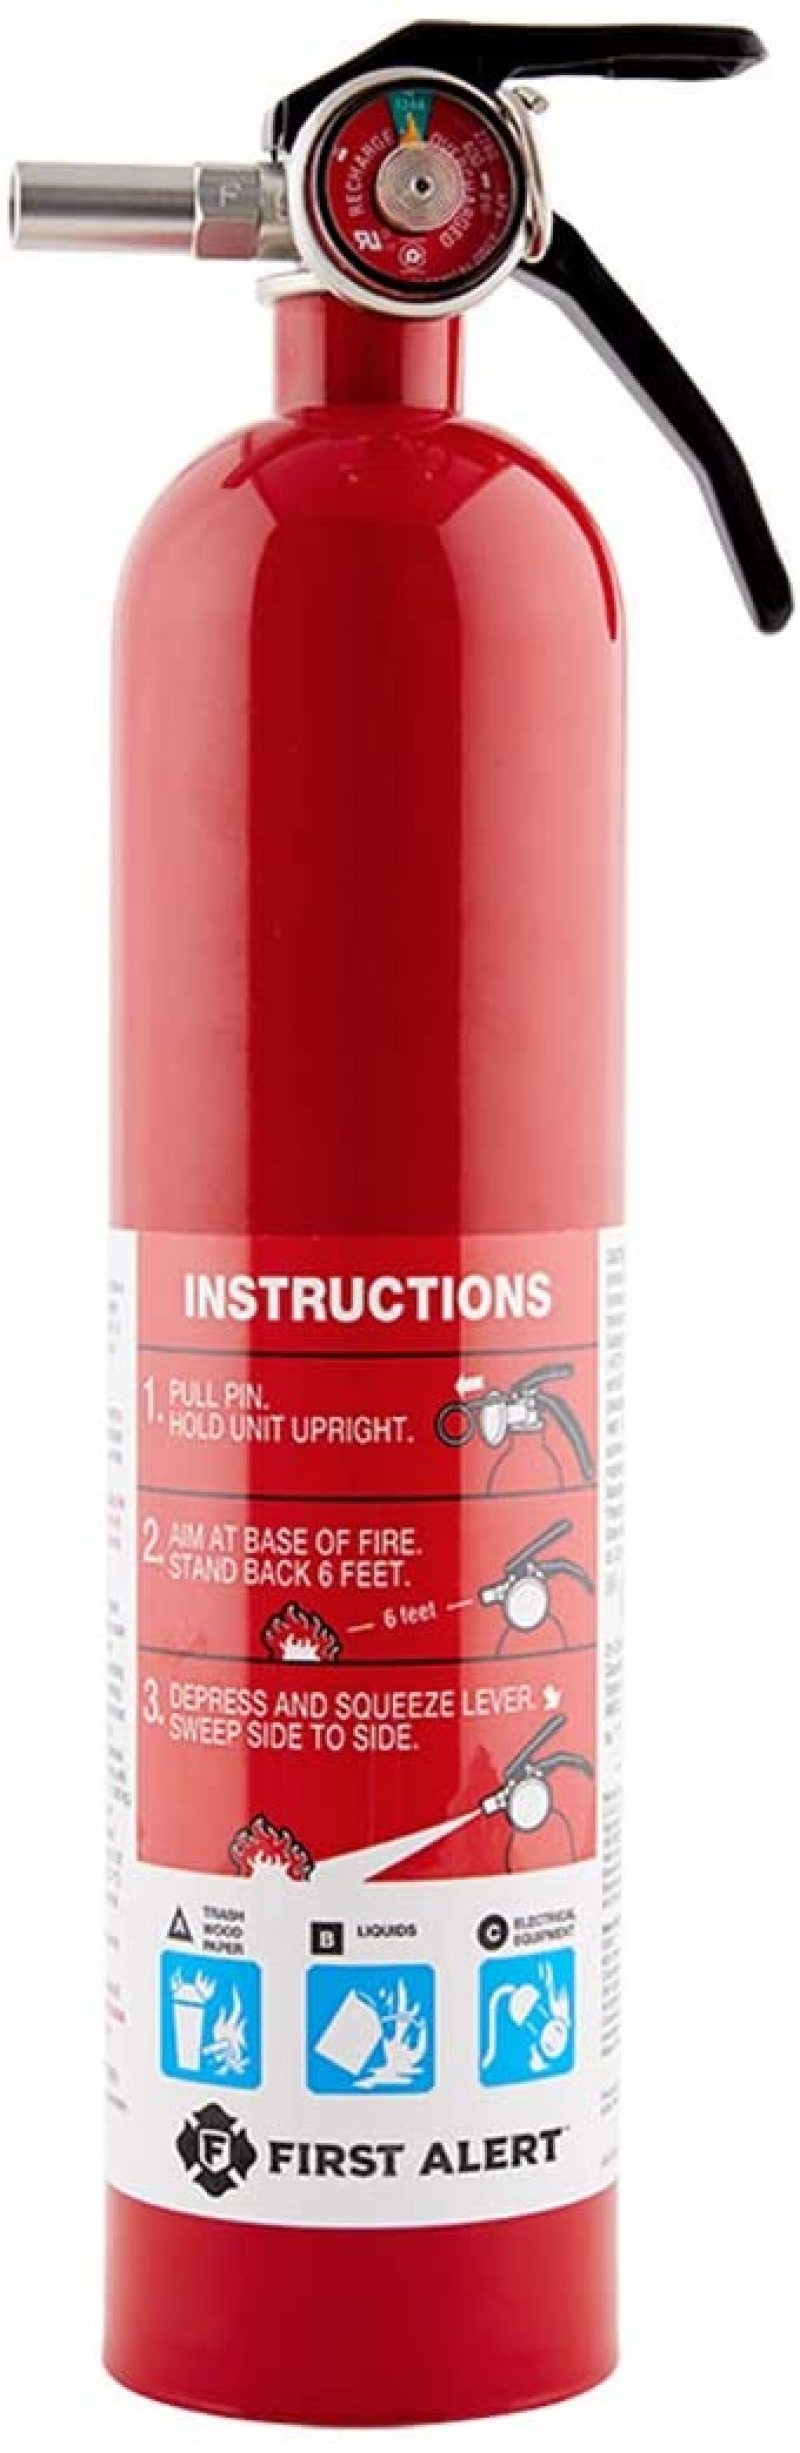 ihocon: FIRST ALERT FE1A10GR195 Standard Home Fire Extinguisher 家用滅火器